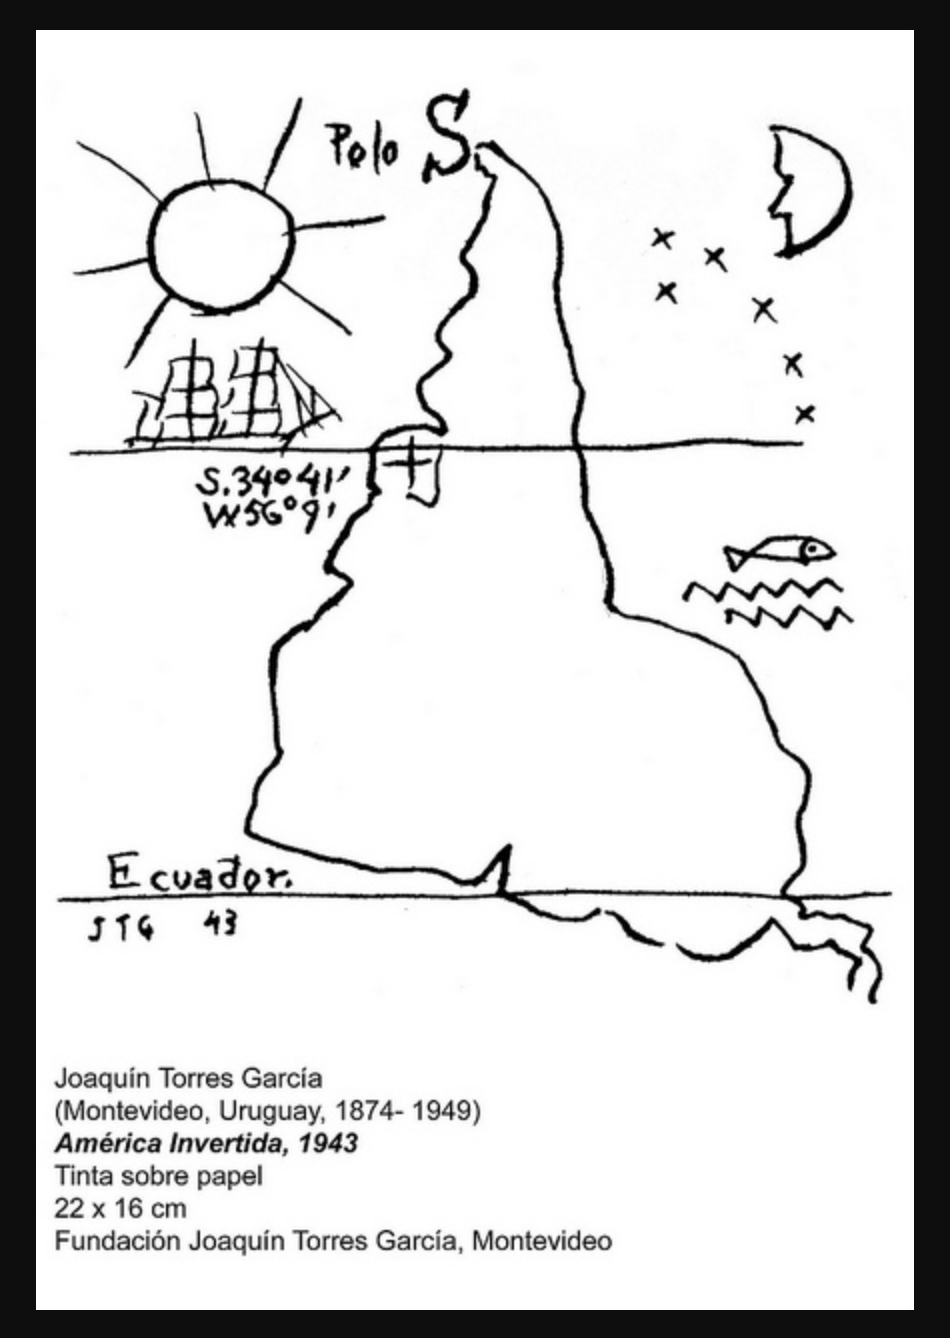 1943 sketch by Joaquin Torres Garcia of an inverted partial Latin America.